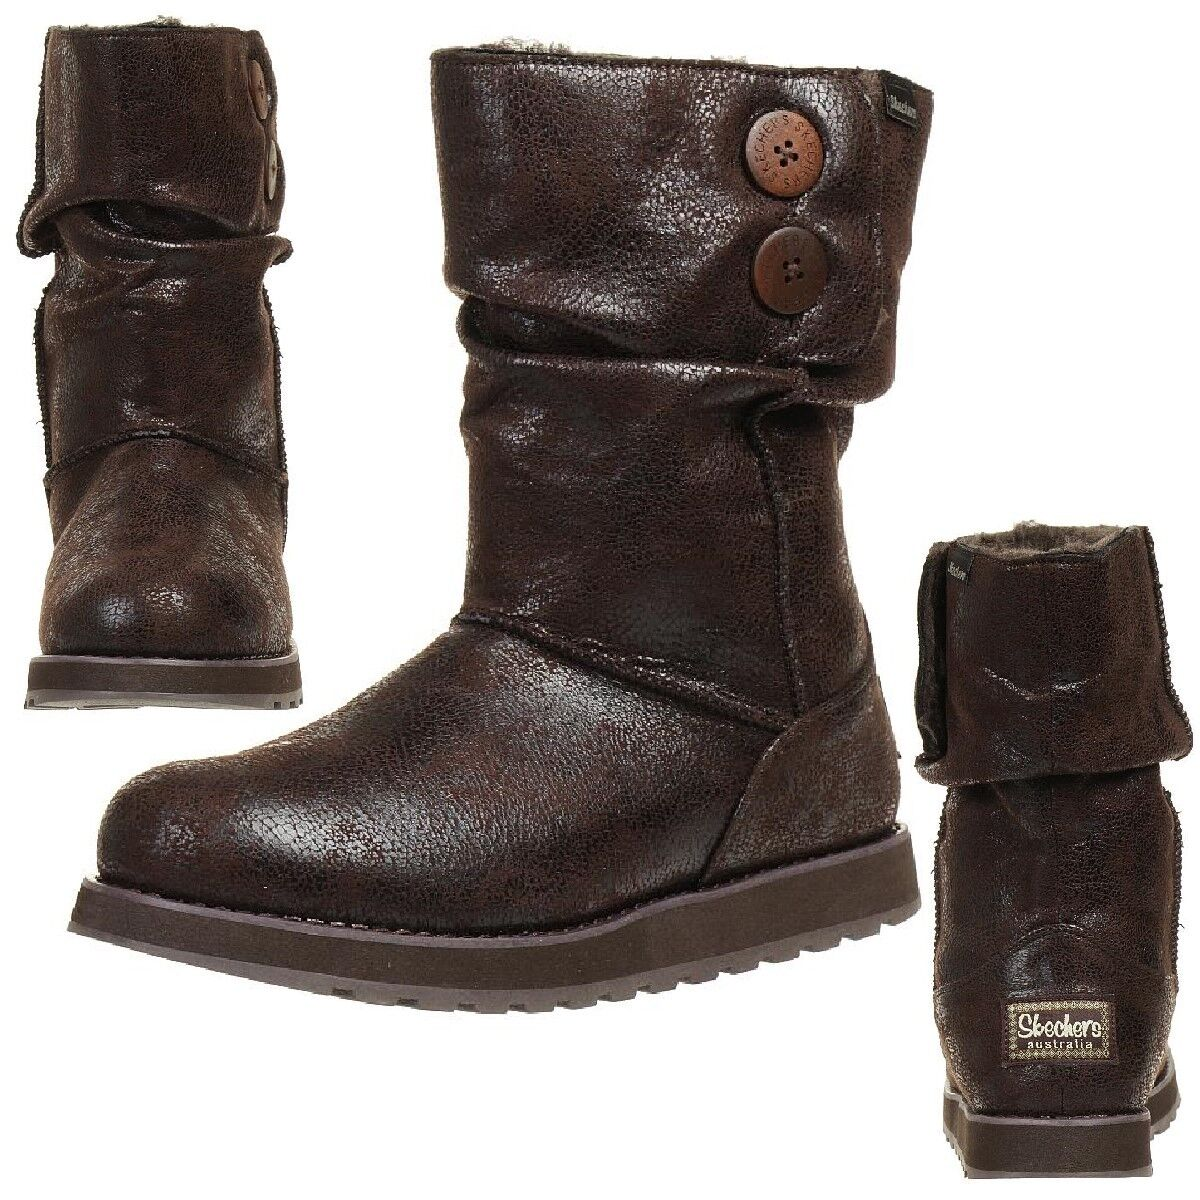 Skechers Keepsakes Leather Esque Boots Women's Winter shoes Padded Choc